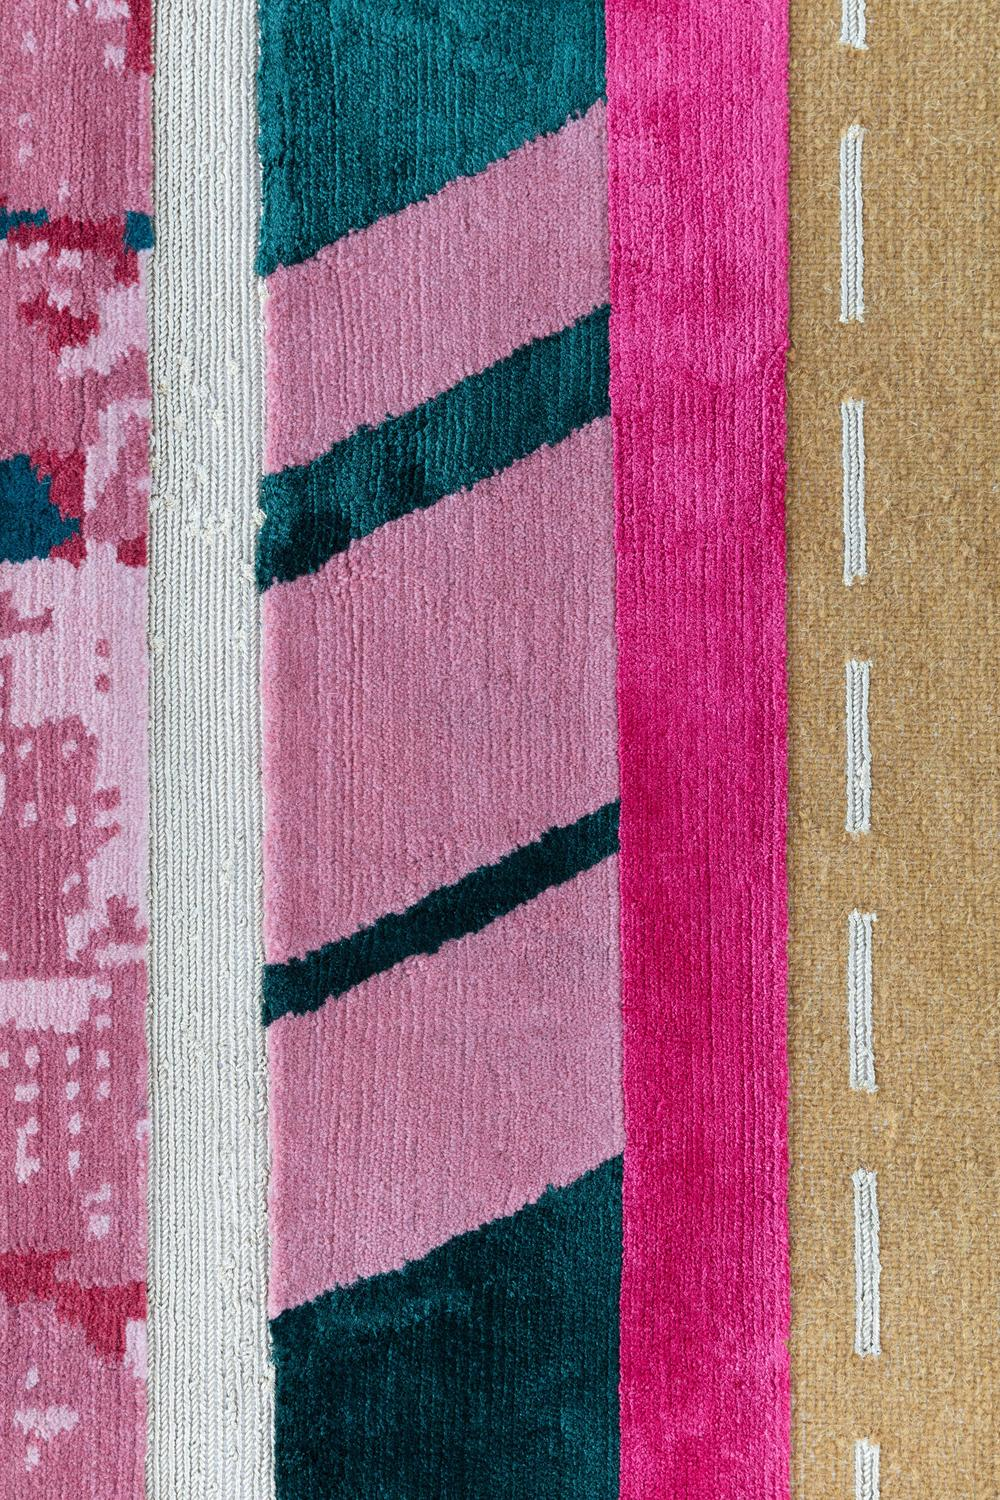 Contemporary Abstract Rug Paralleli B4 By Dimore Studio